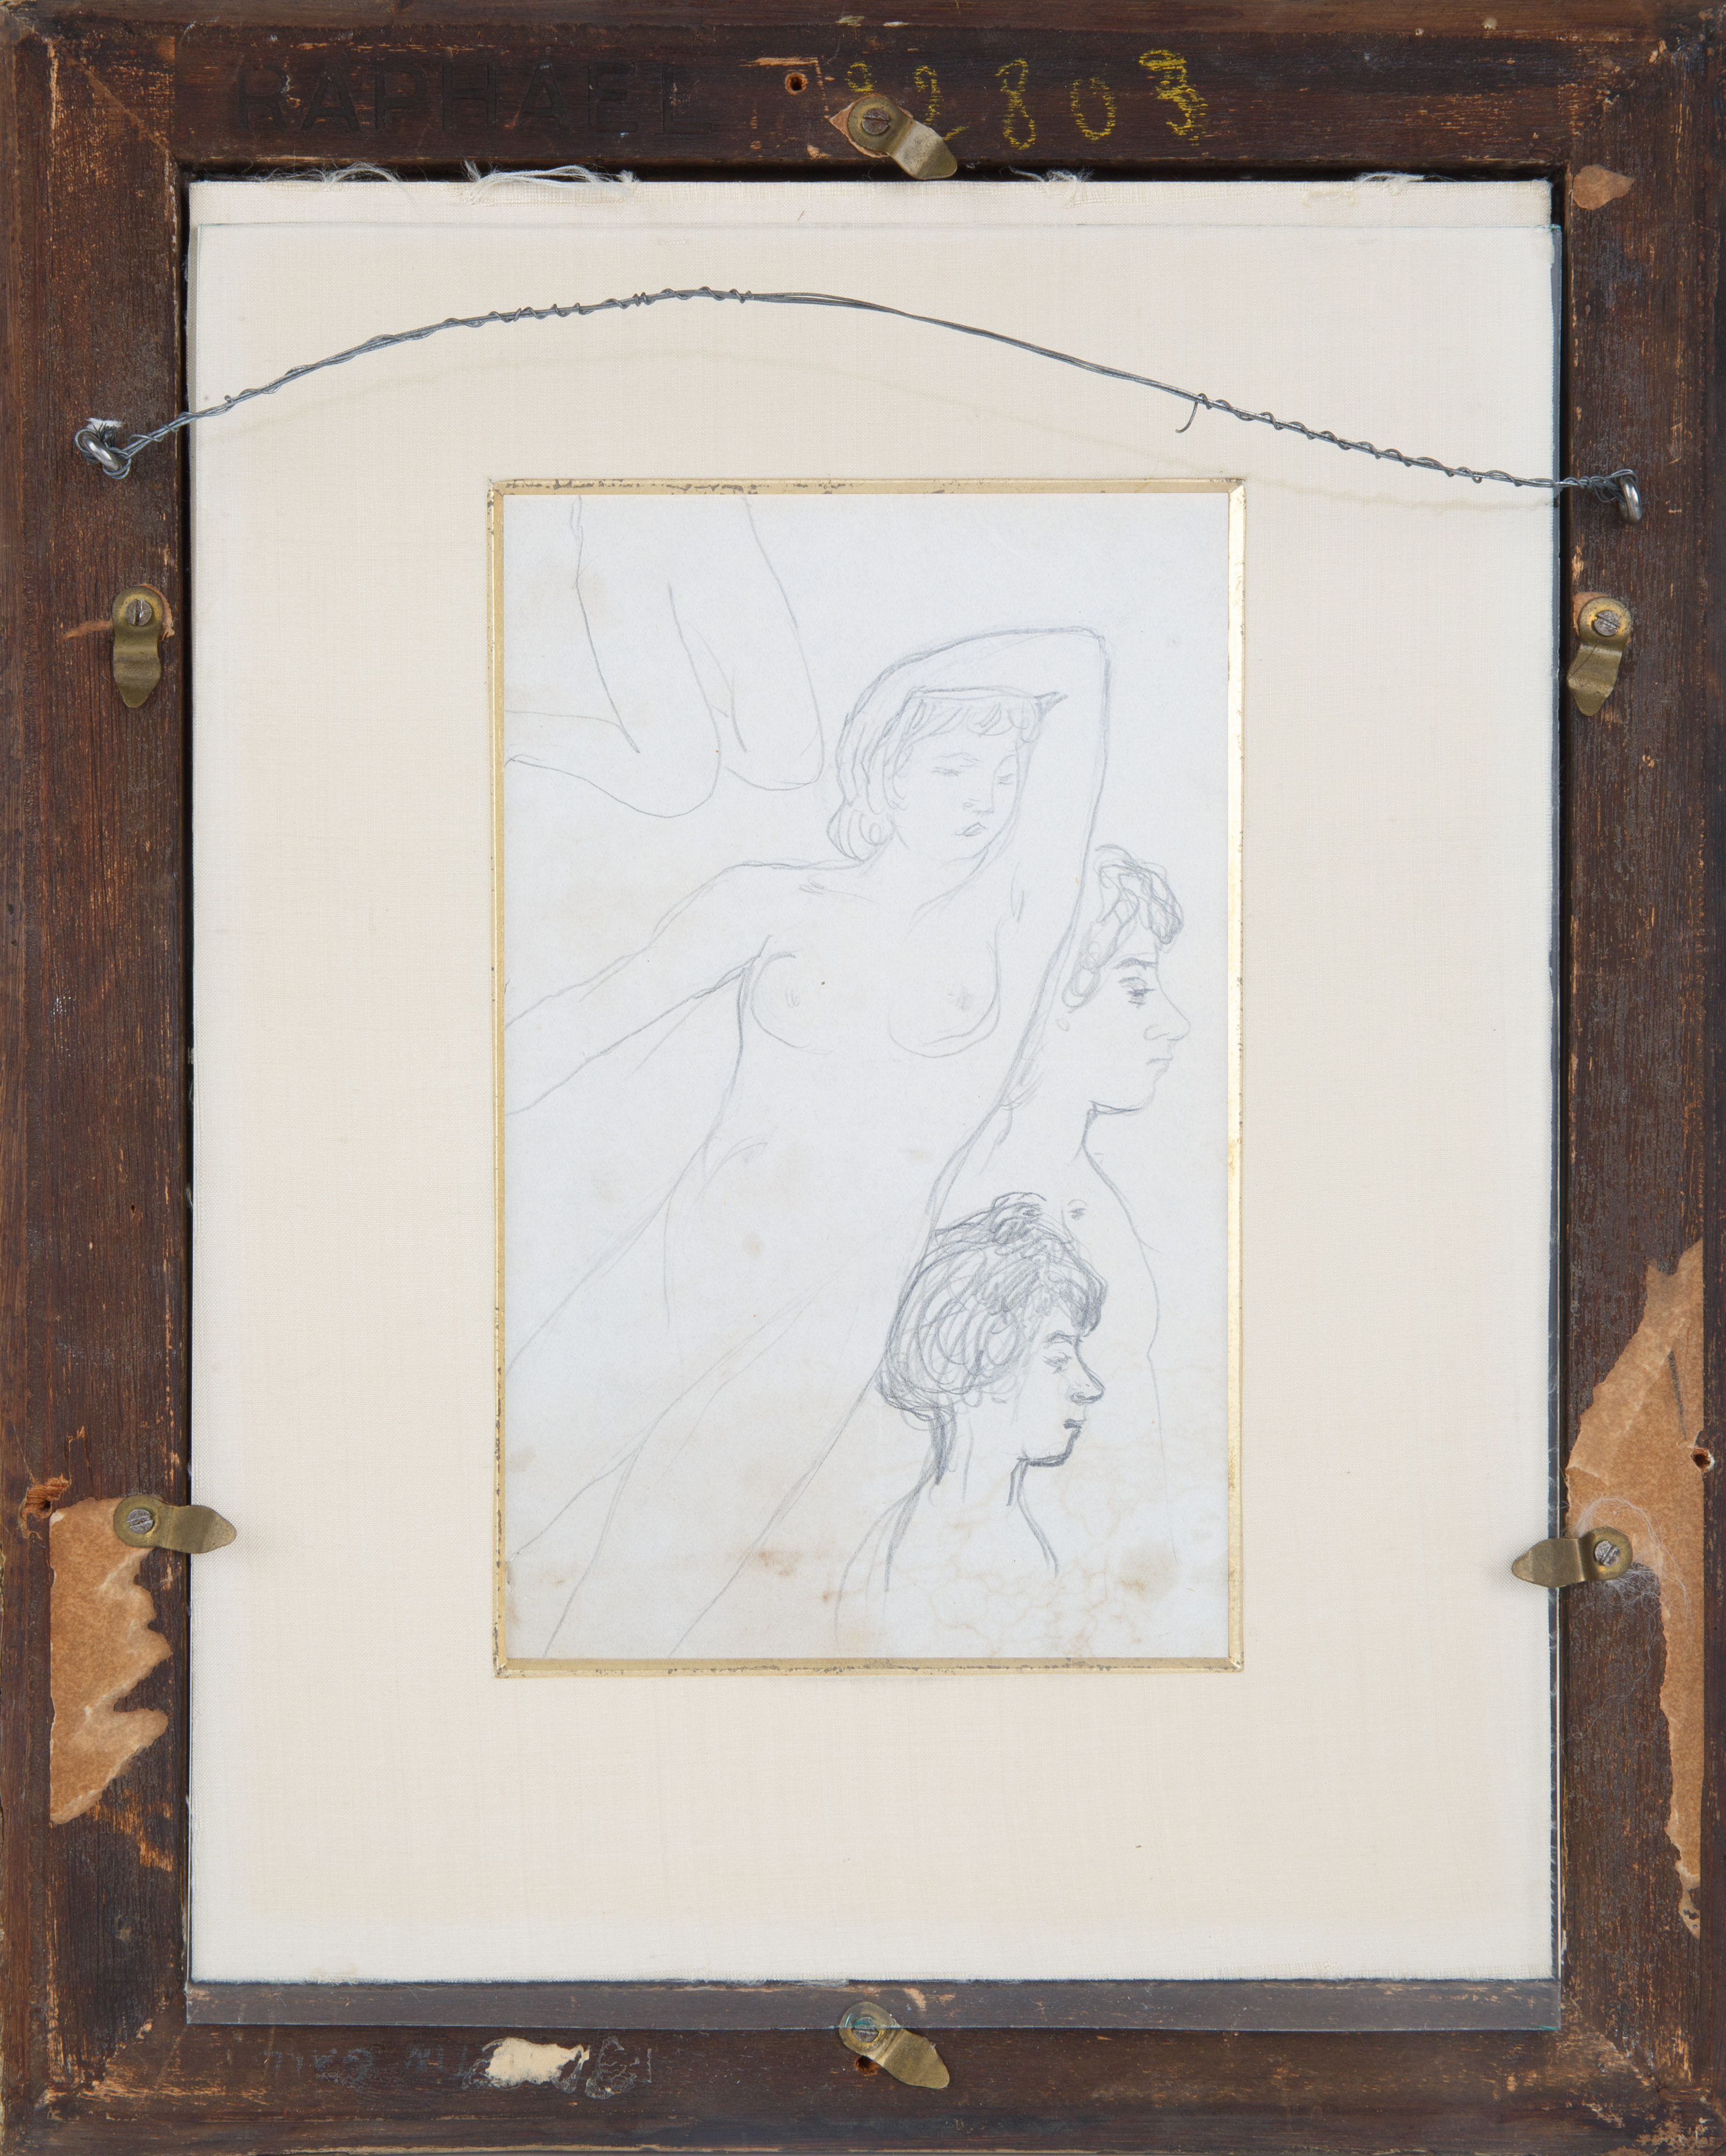 A DOUBLE-SIDED NUDE BY PIERRE BONNARD (FRENCH 1867-1947) - Image 5 of 6